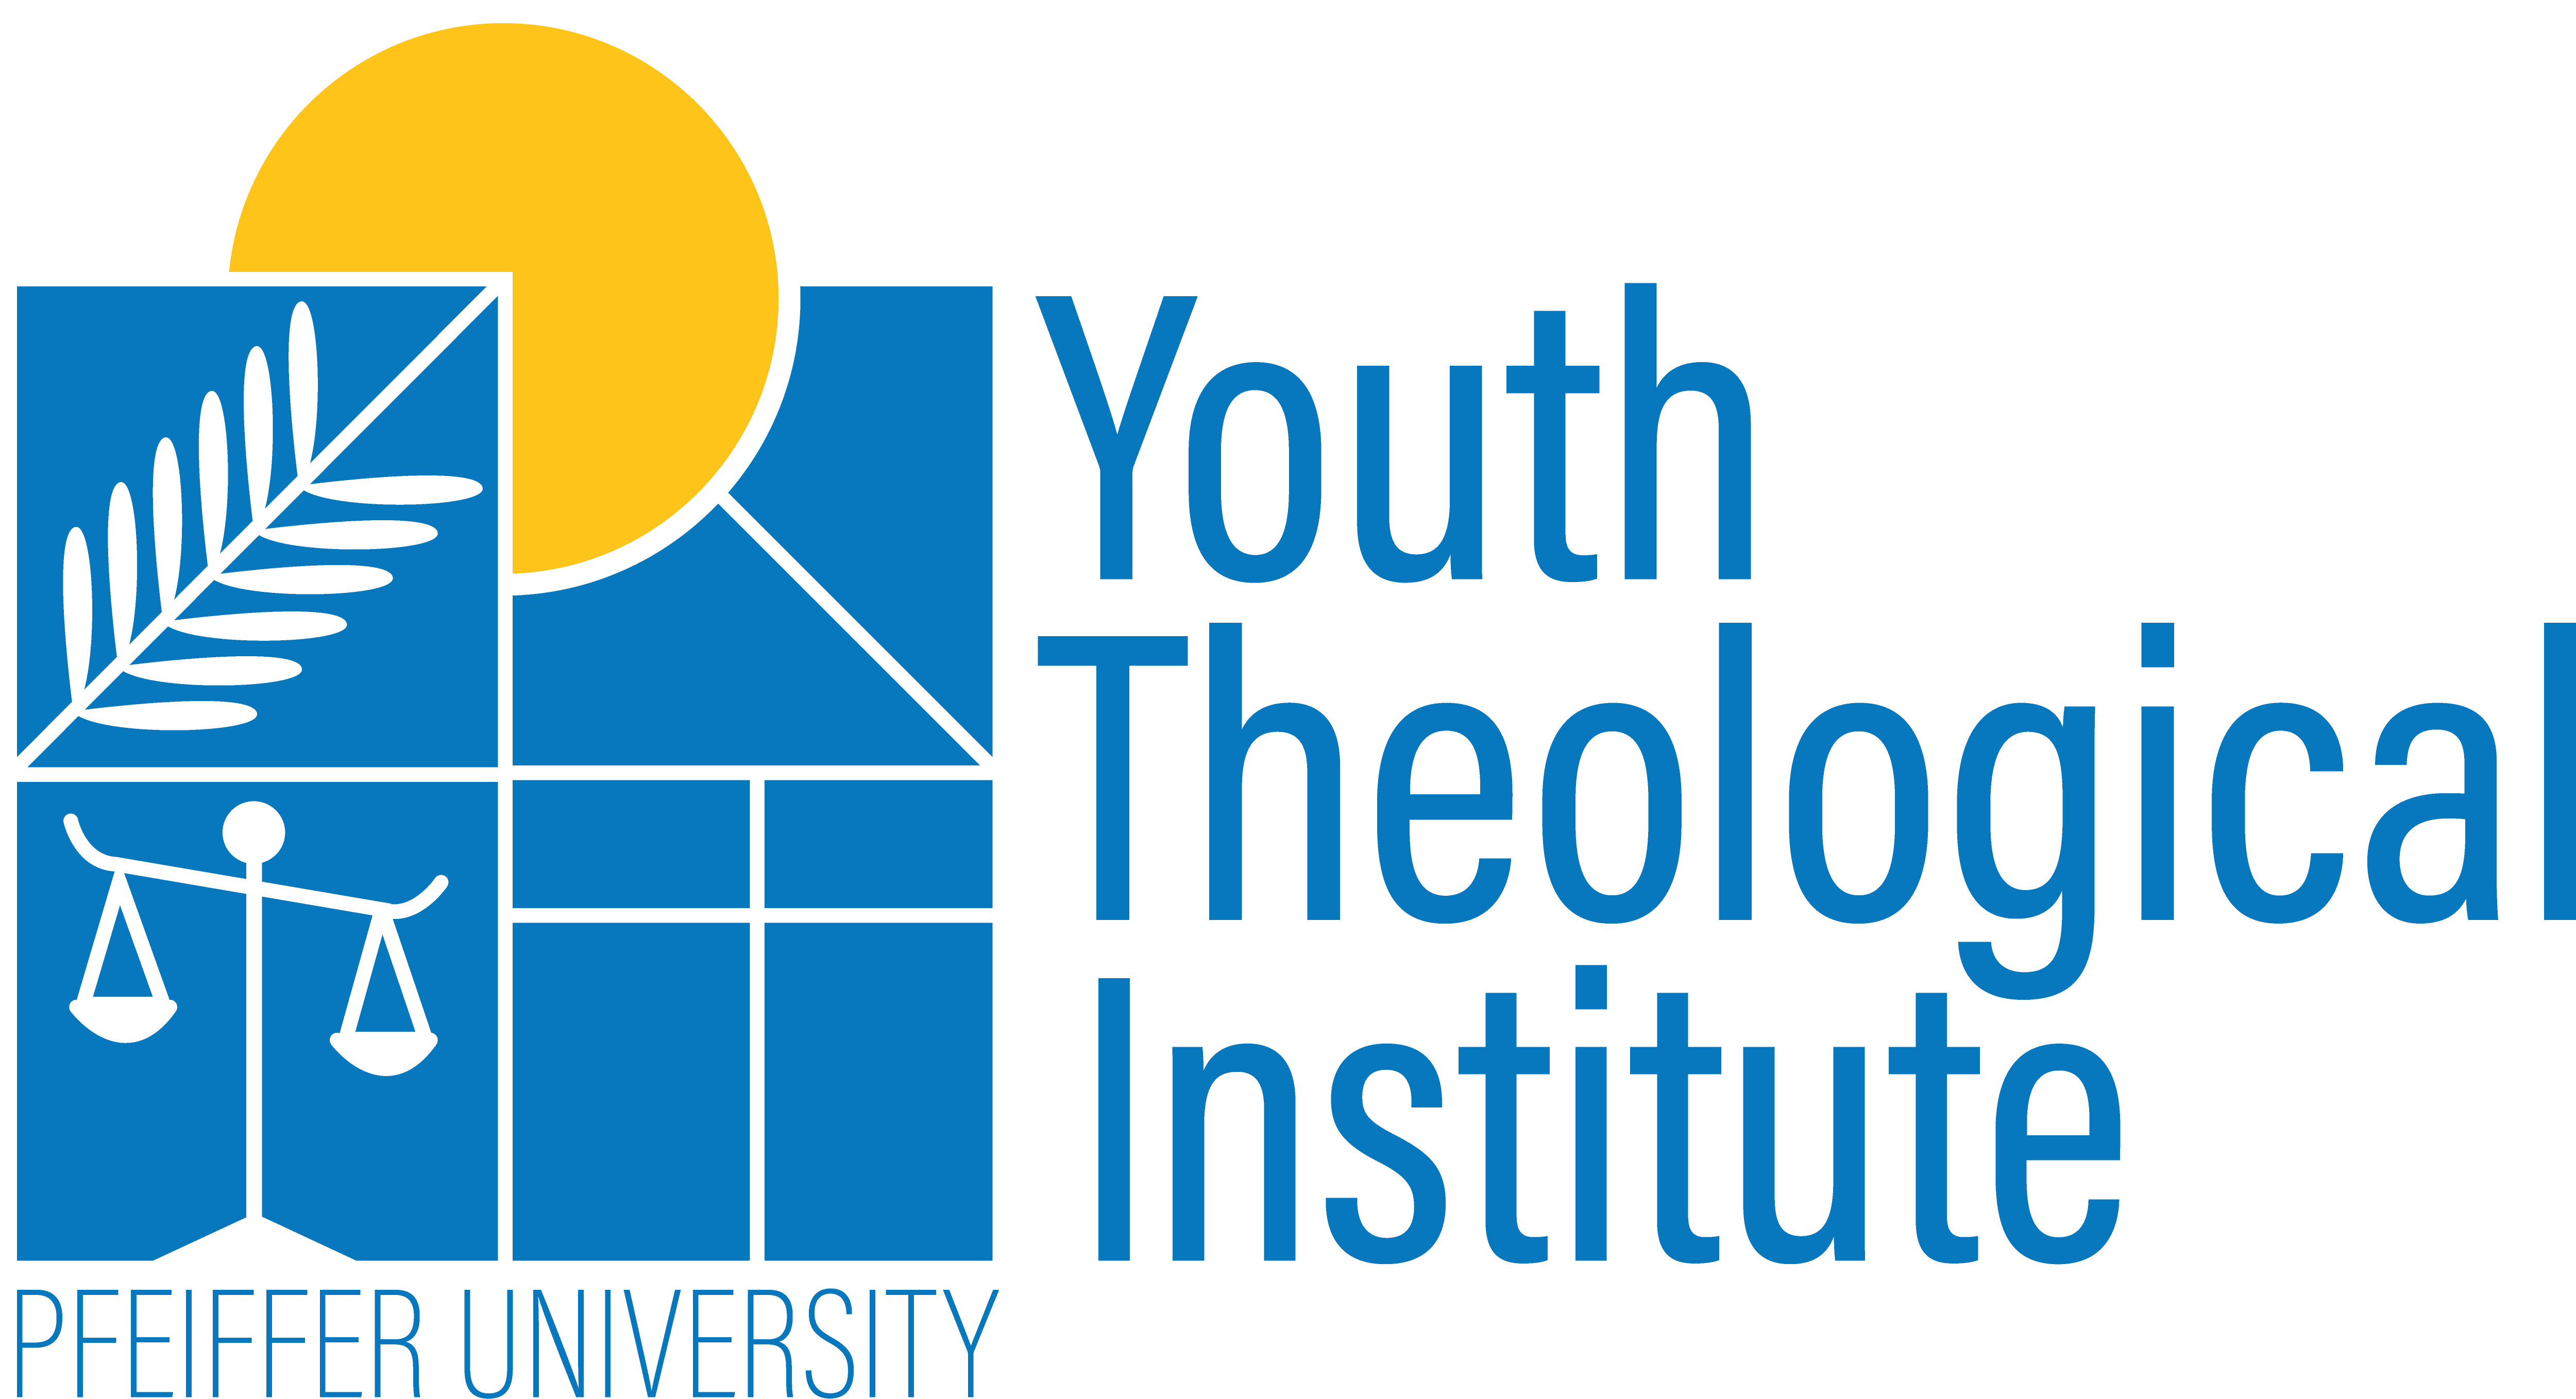 The Pfeiffer Youth Theological Institute